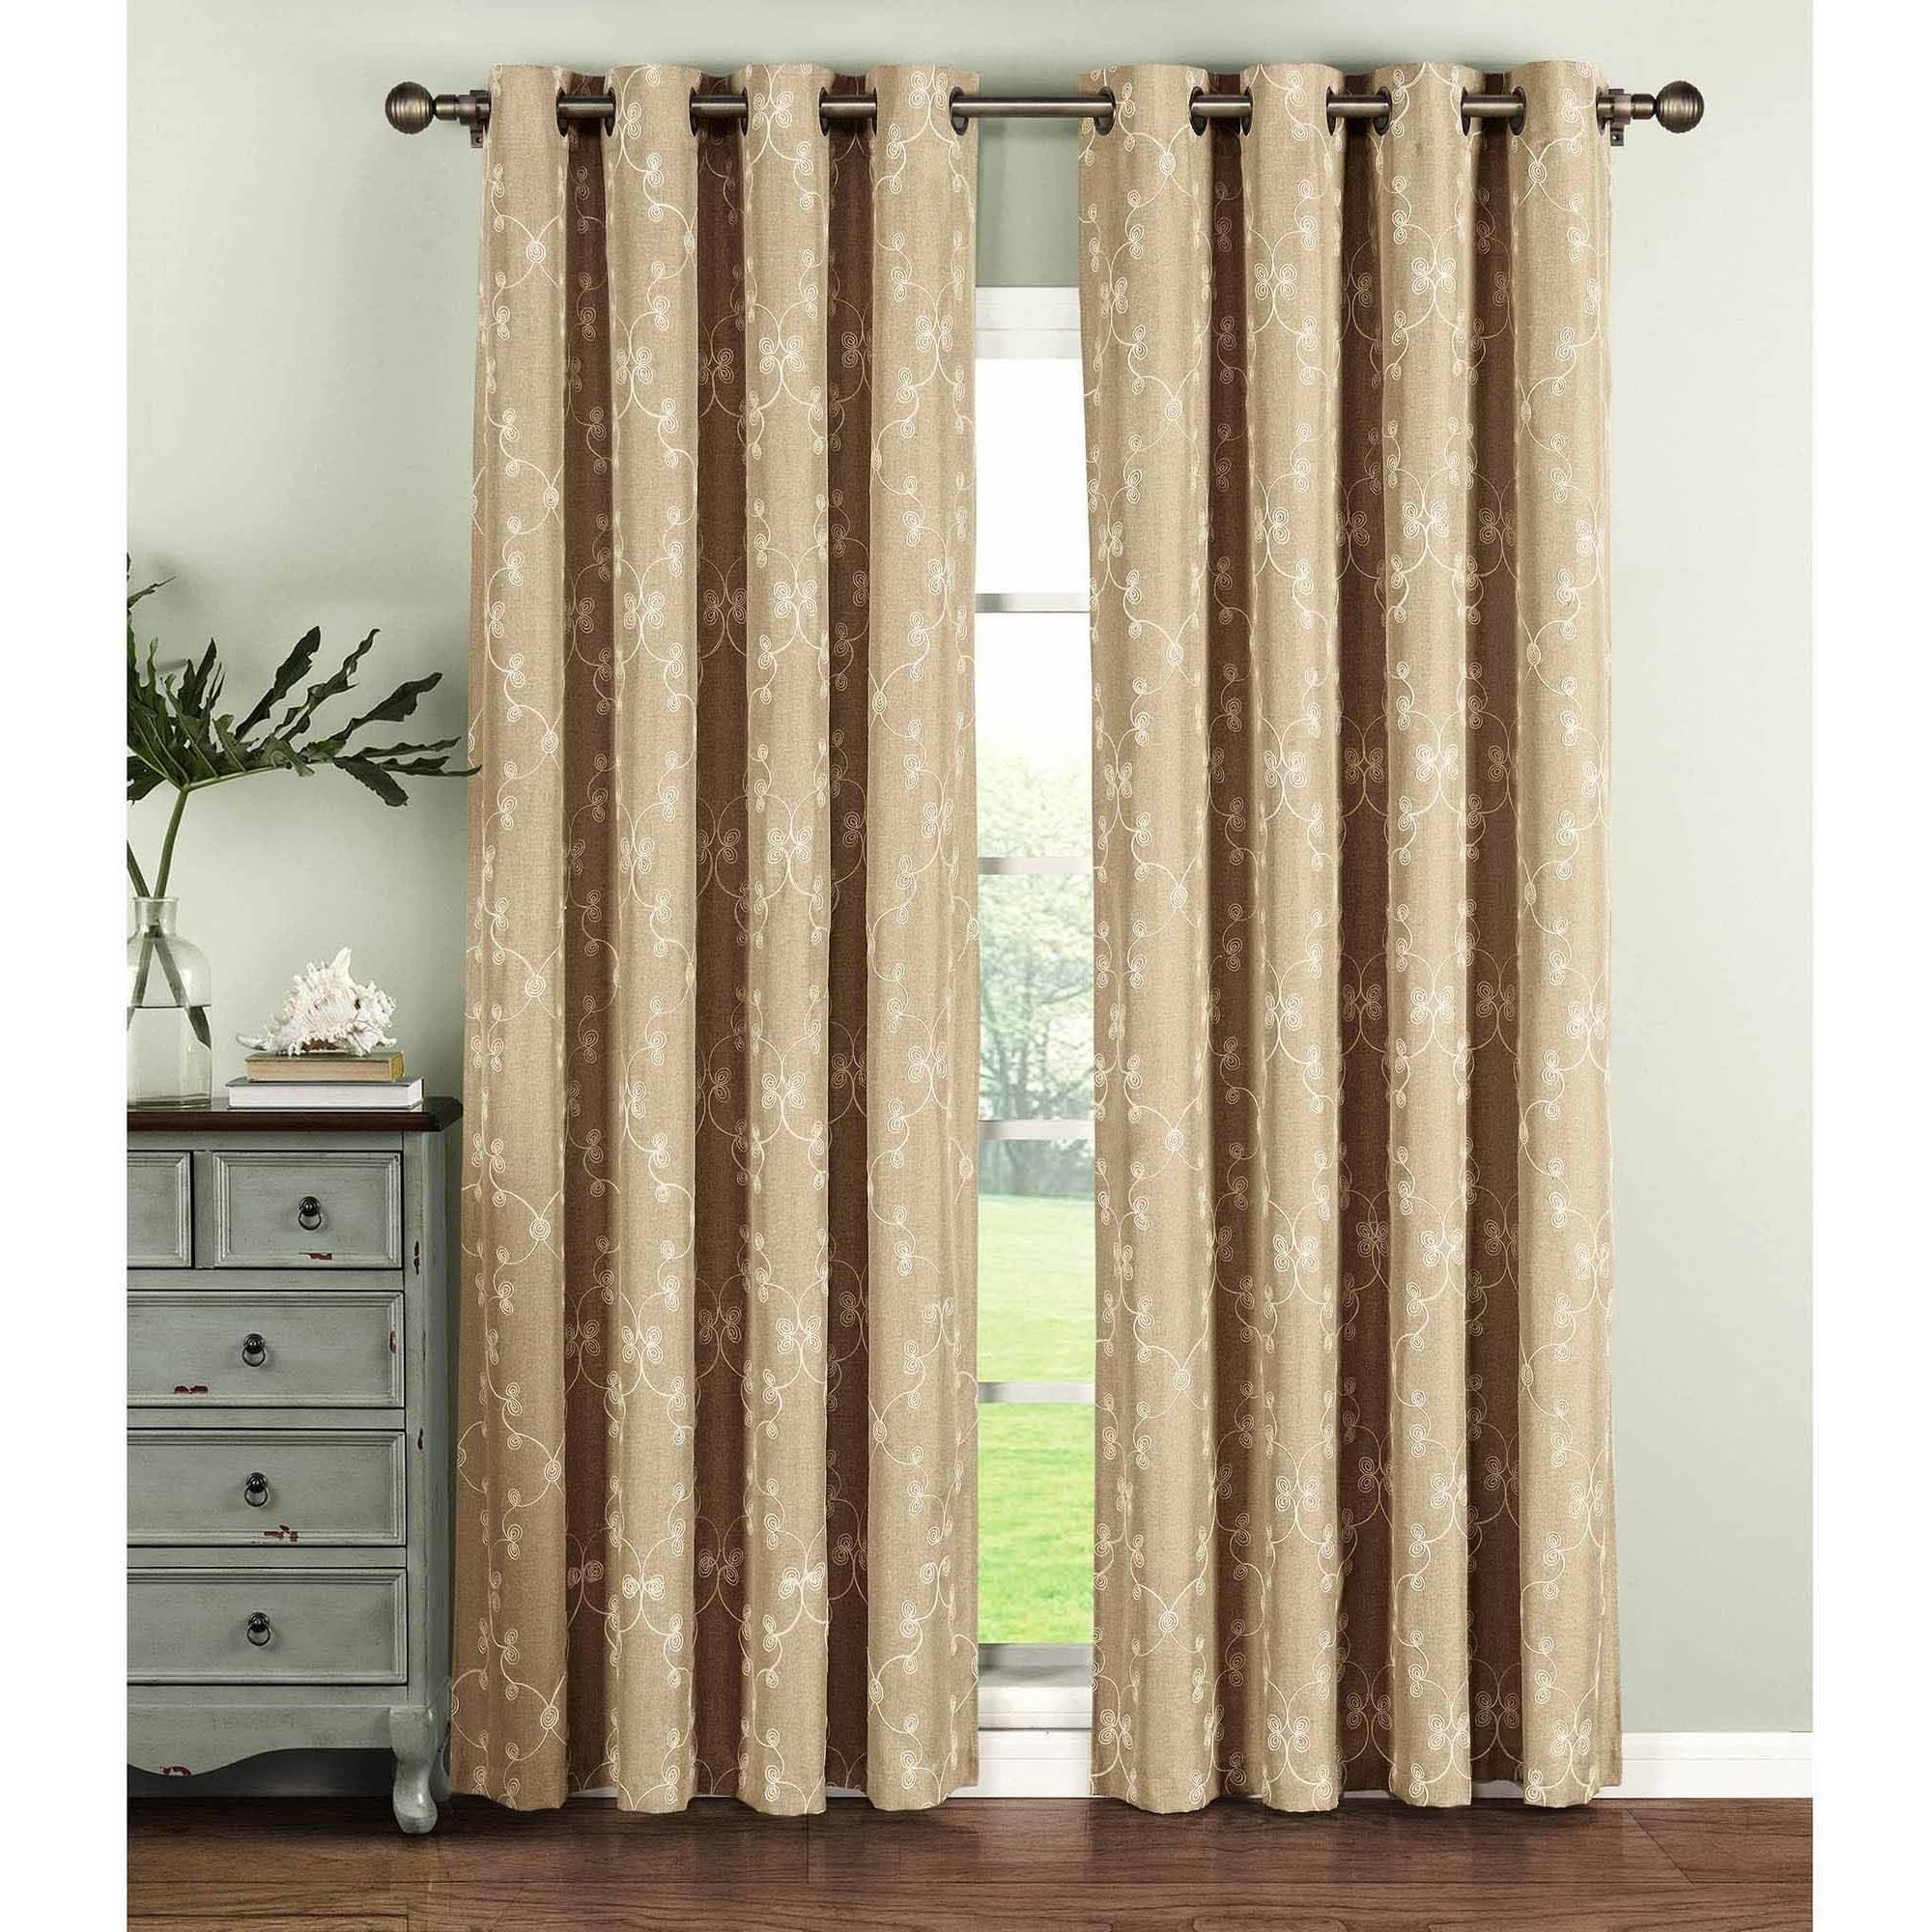 Most Recent Geo Gate Embroidered Faux Linen Extra Wide Grommet Curtain Panel Pairs In Curtain Panel Pairs (Gallery 12 of 20)